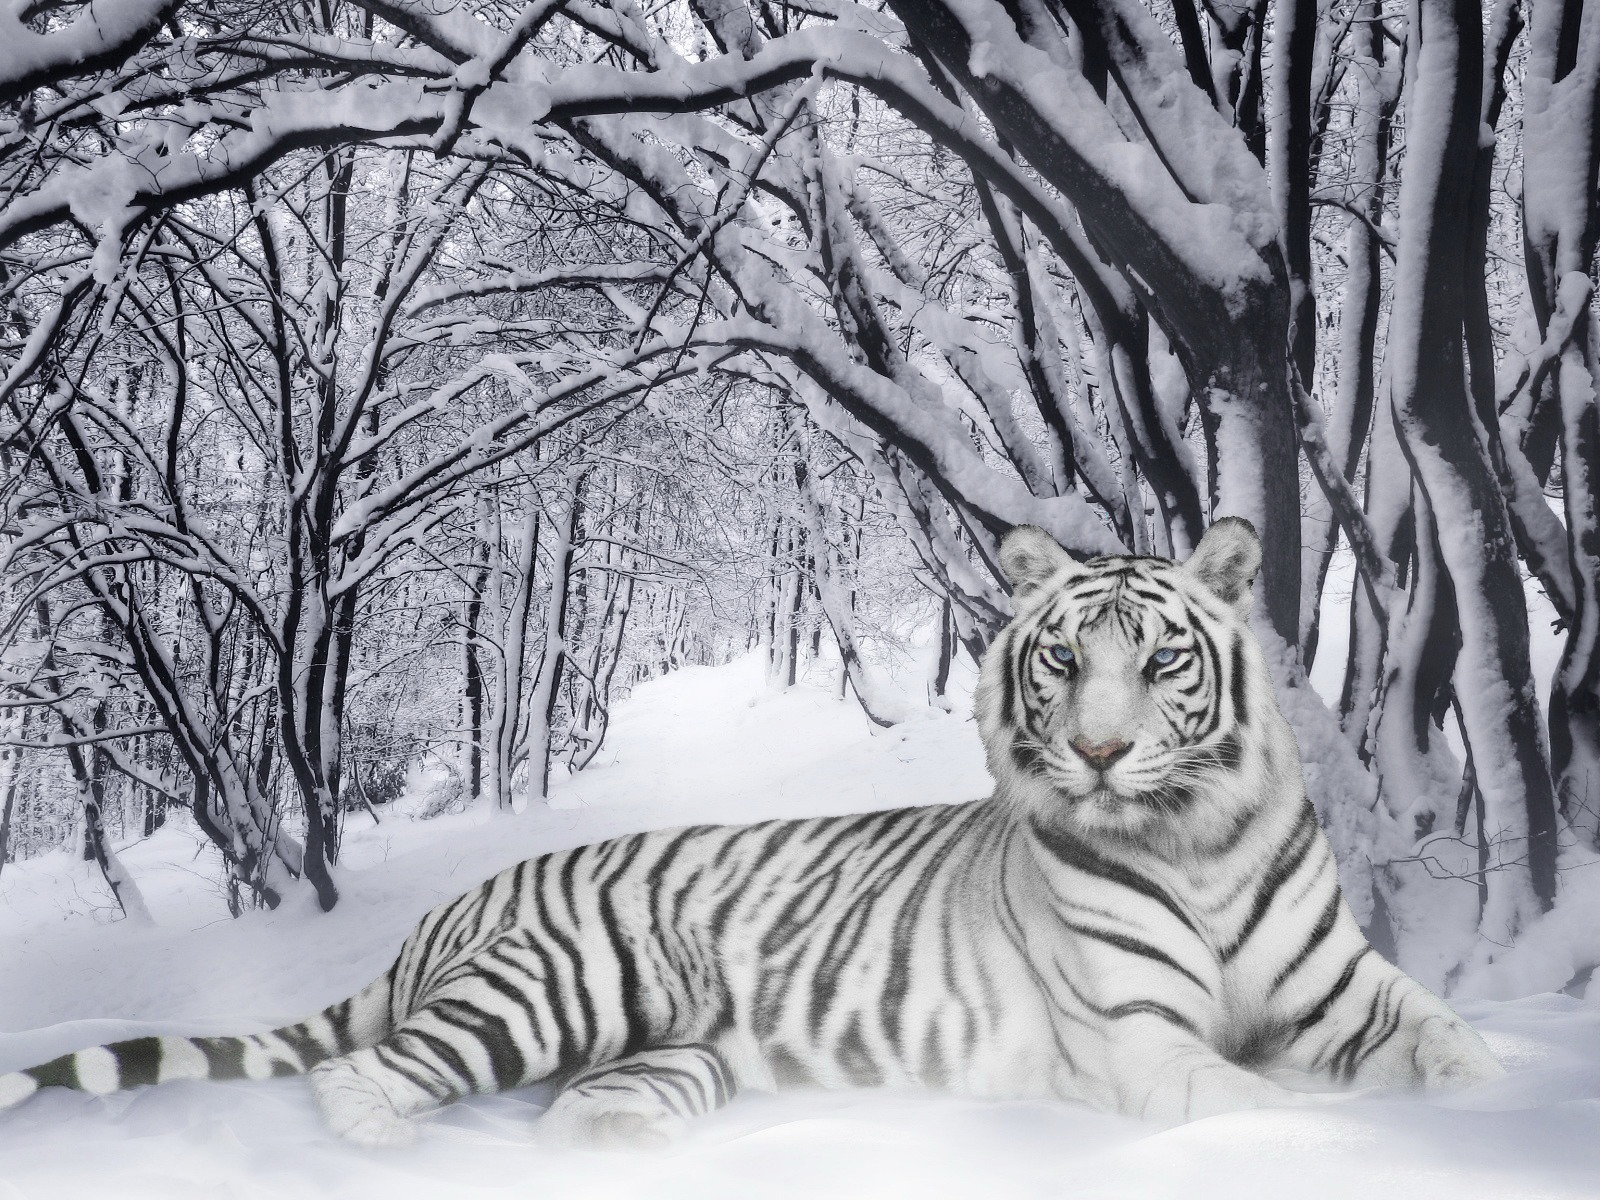 White tiger wallpaper tigers animals wallpaper 385 further Pills Capsules Backgrounds together with Bolek And Lolek Symphony 17976 75 besides Golden Opportunity Backgrounds together with Santa Animated Cliparts. on 3d animated cartoons